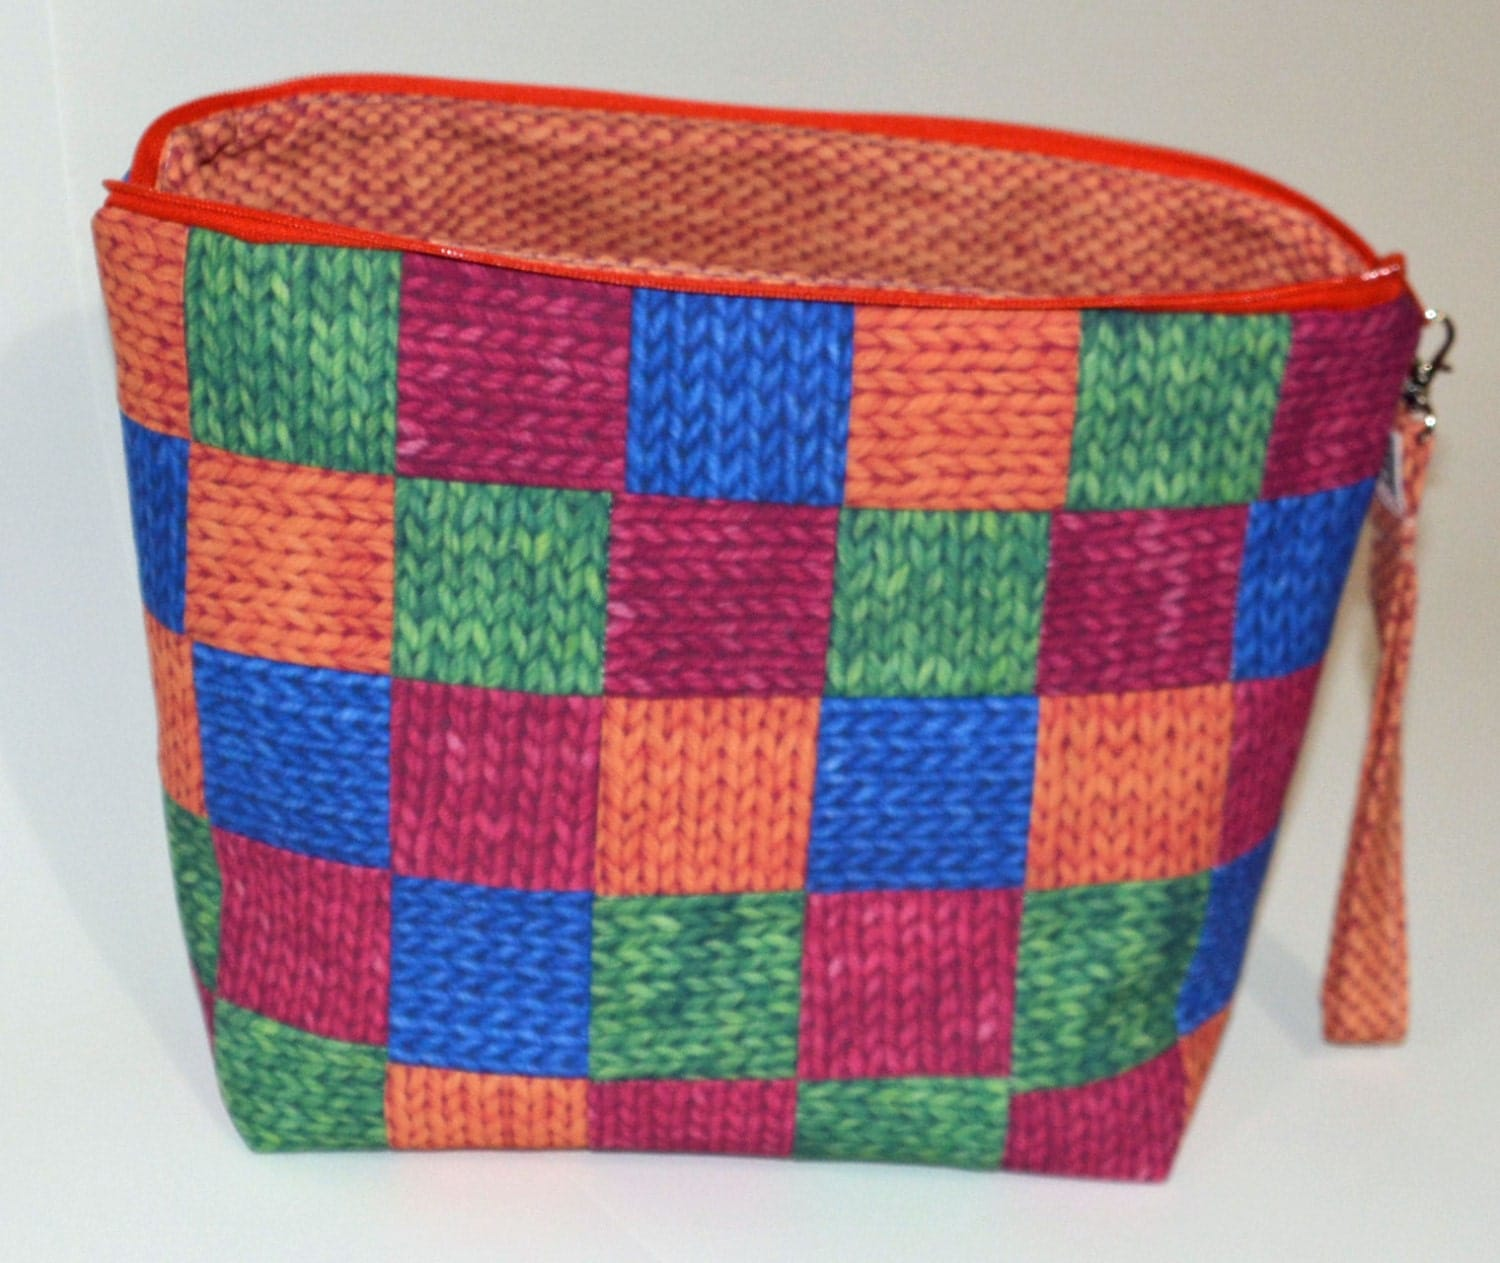 Patchwork Knitting Bag Pattern : Patchwork Knit Purl project bag by TheSilverShedUSA on Etsy